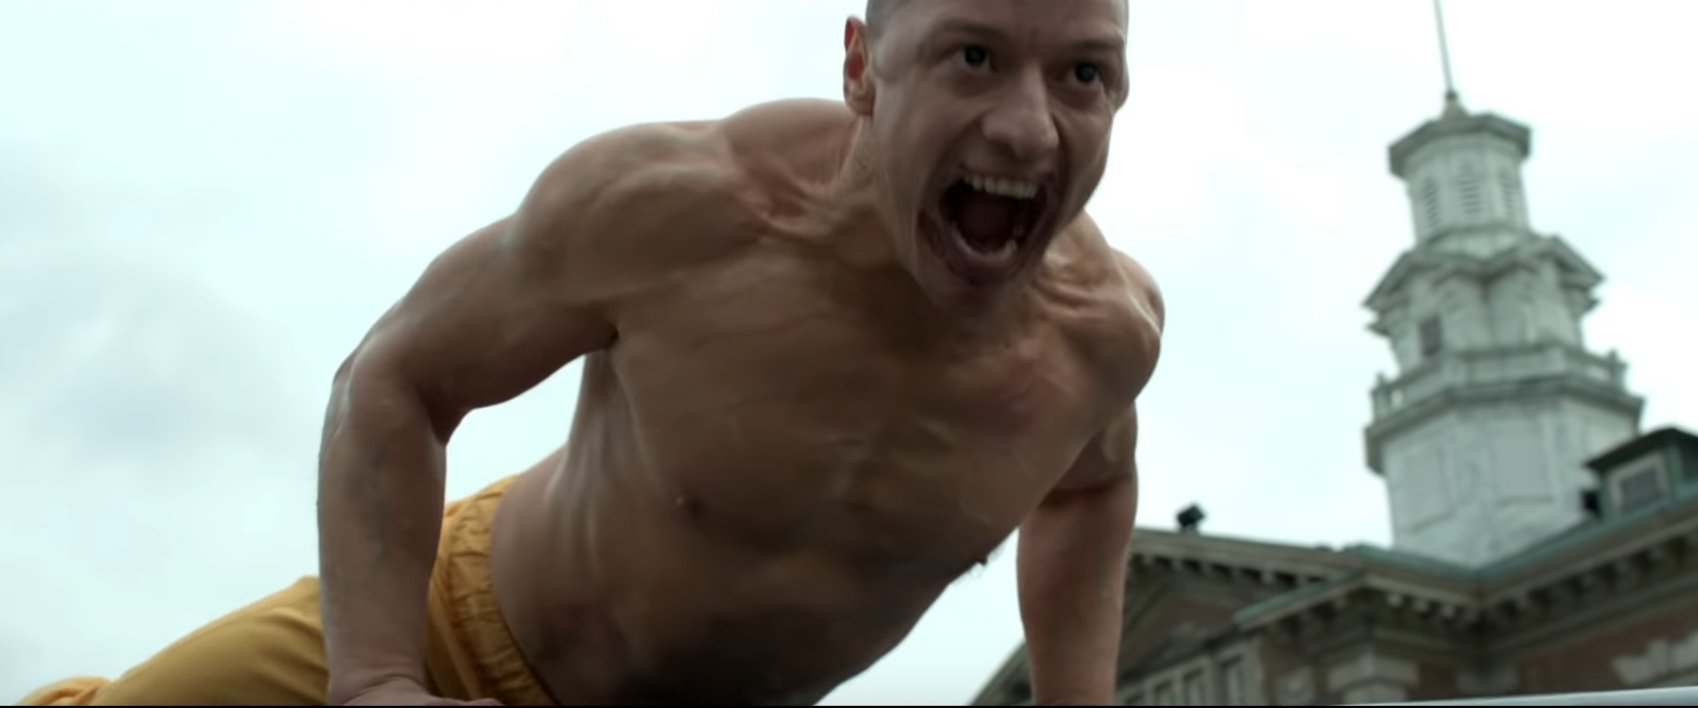 James McAvoy has certainly pounded on the muscle for this role. Credit: Universal Pictures